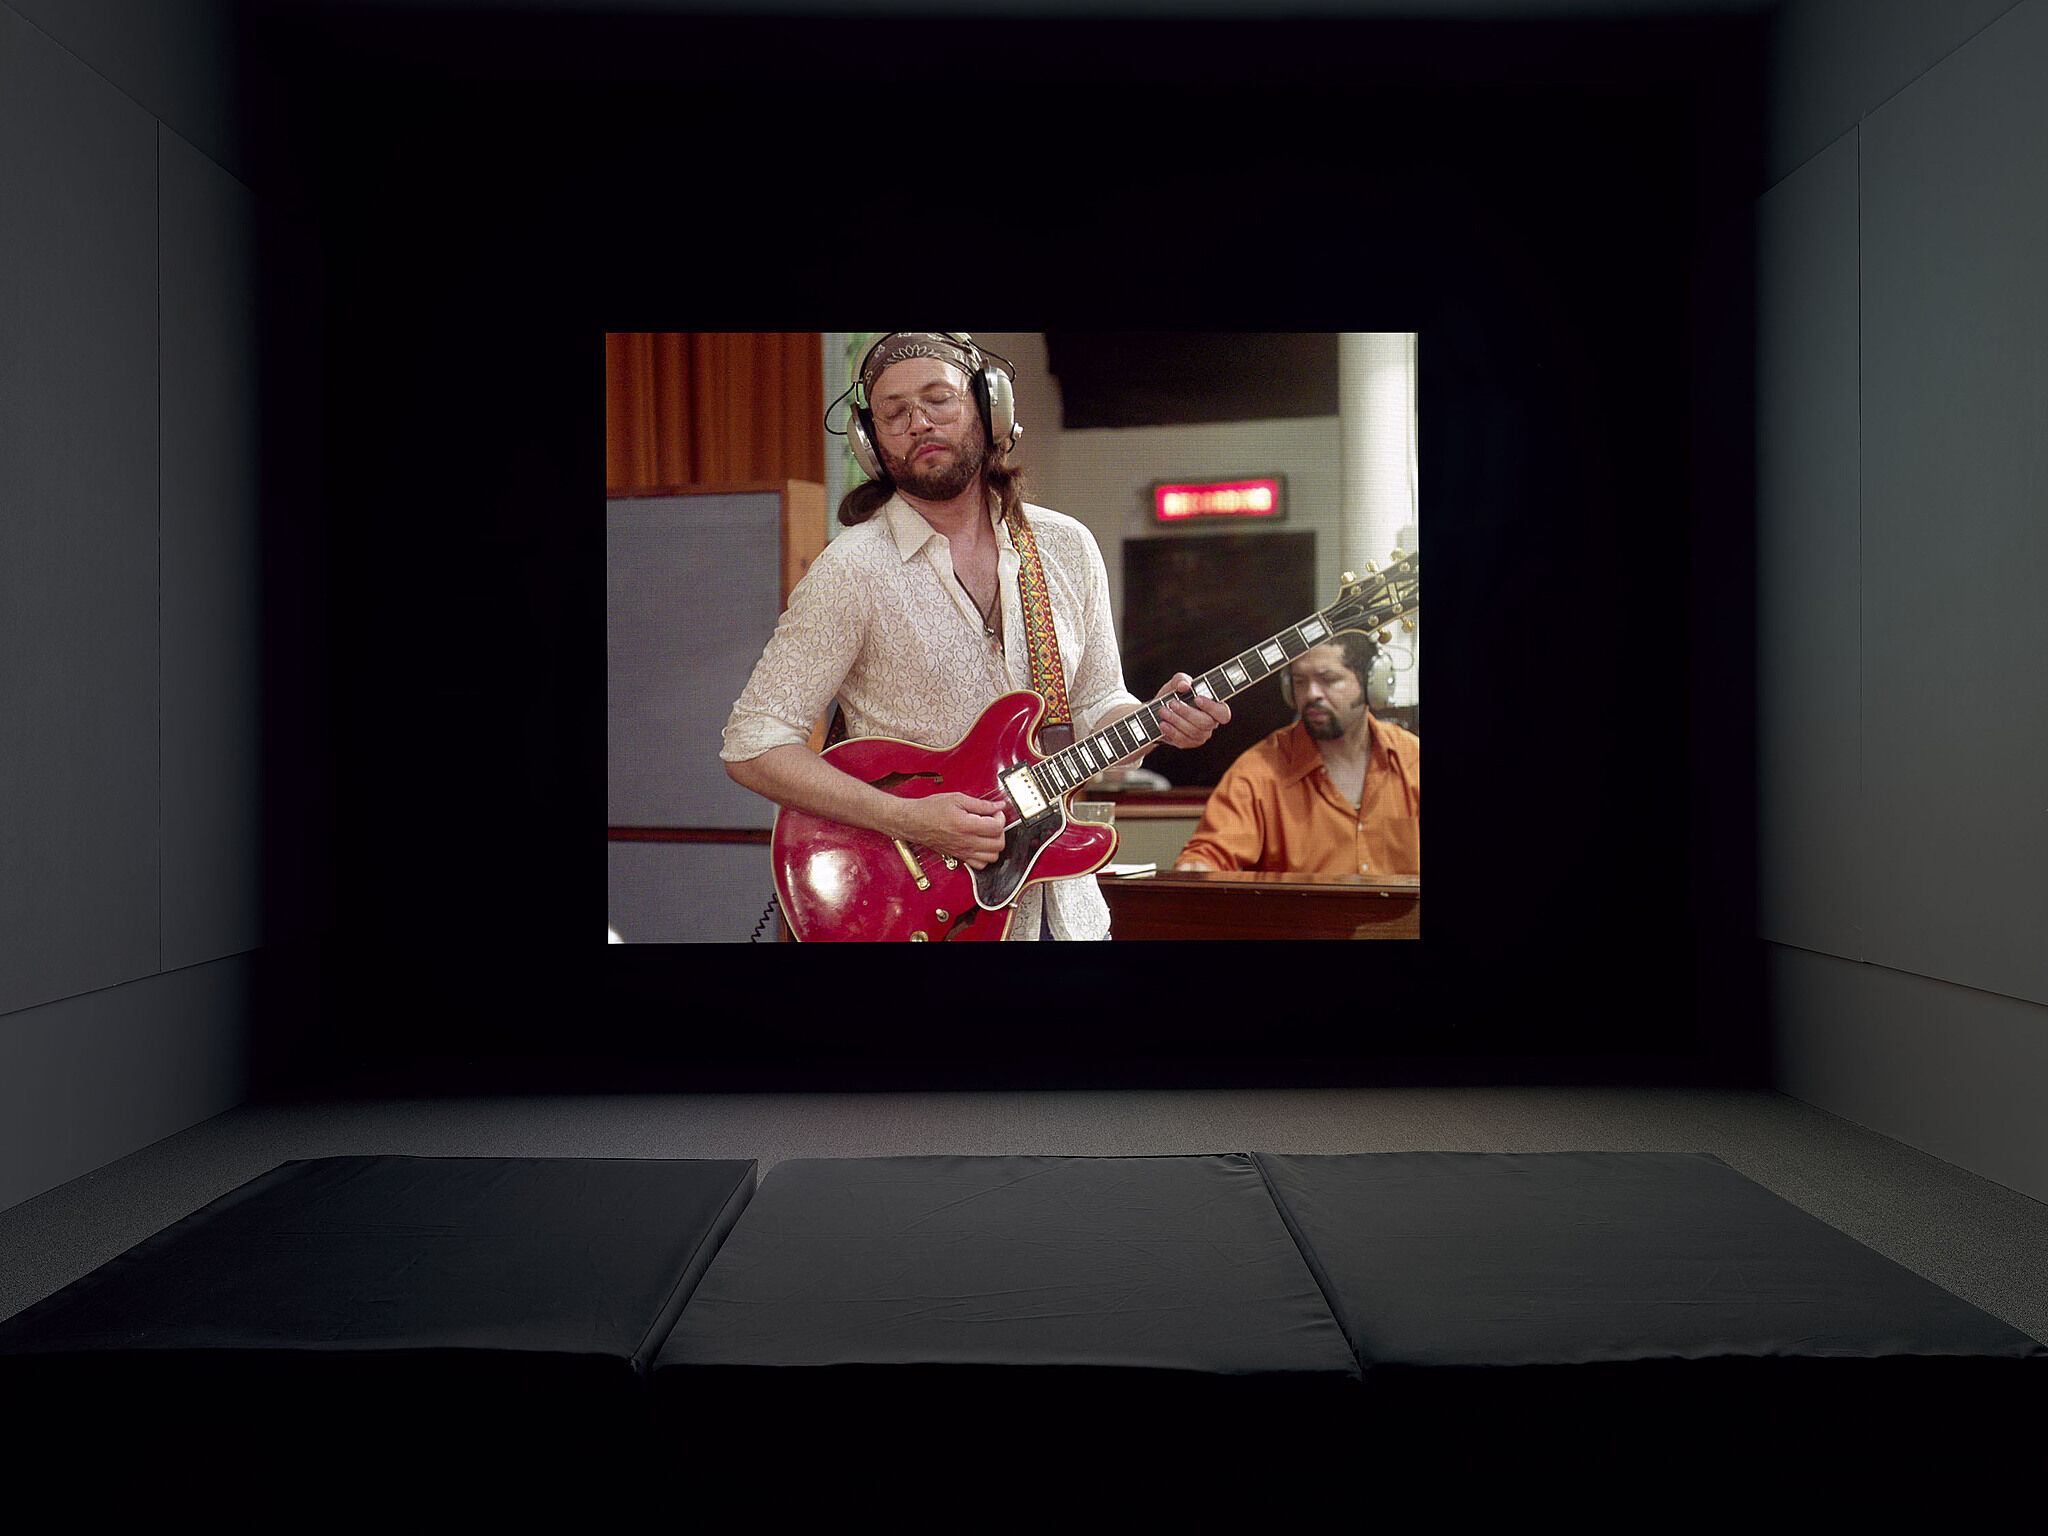 A video projection of a person playing guitar